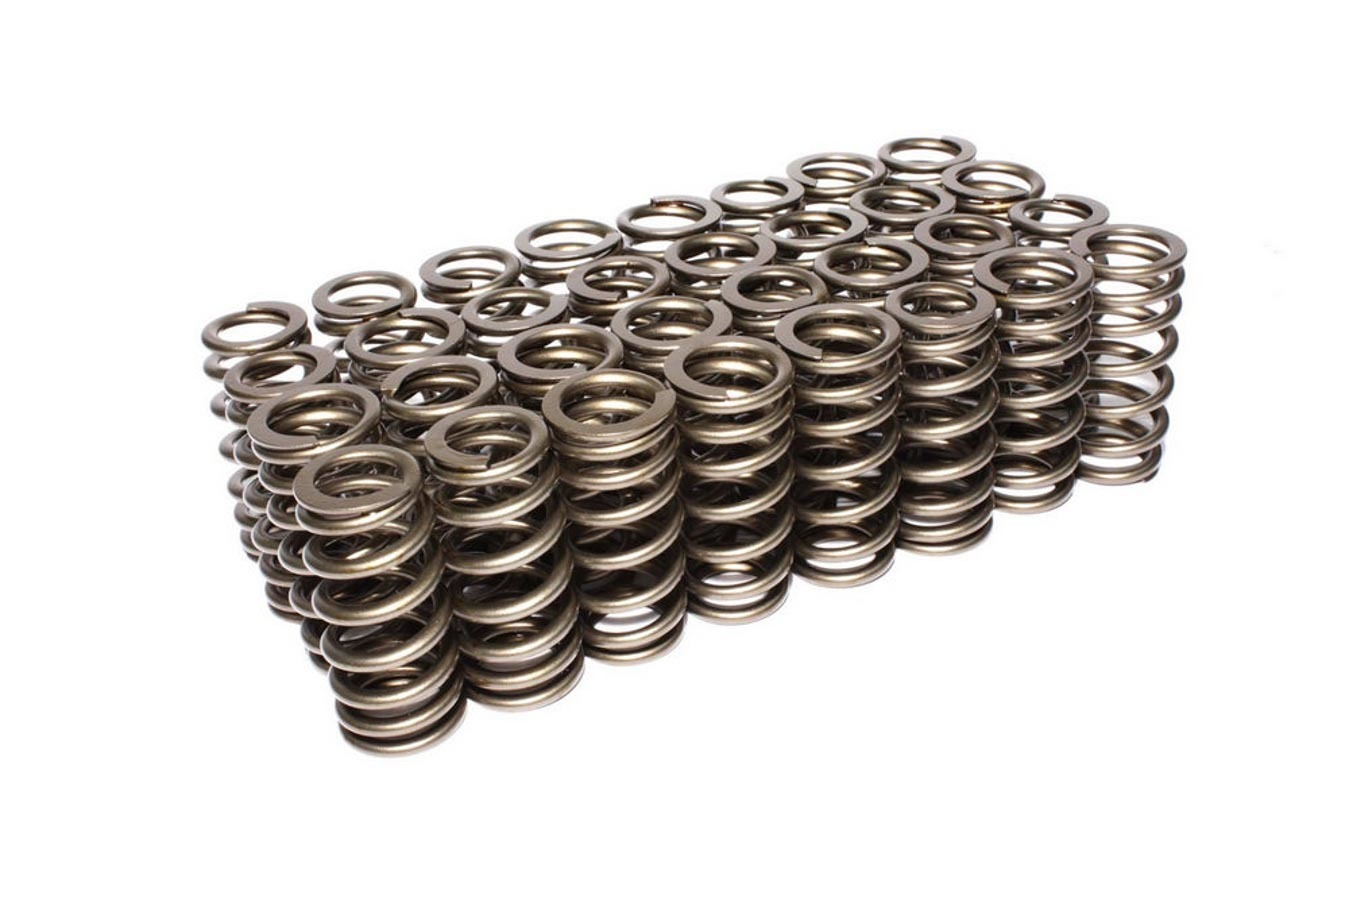 Comp Cams 26123-32 Valve Spring, Performance Street, Beehive Spring, 324 lb/in Spring Rate, 0.900 in Coil Bind, 1.105 in OD, Set of 32